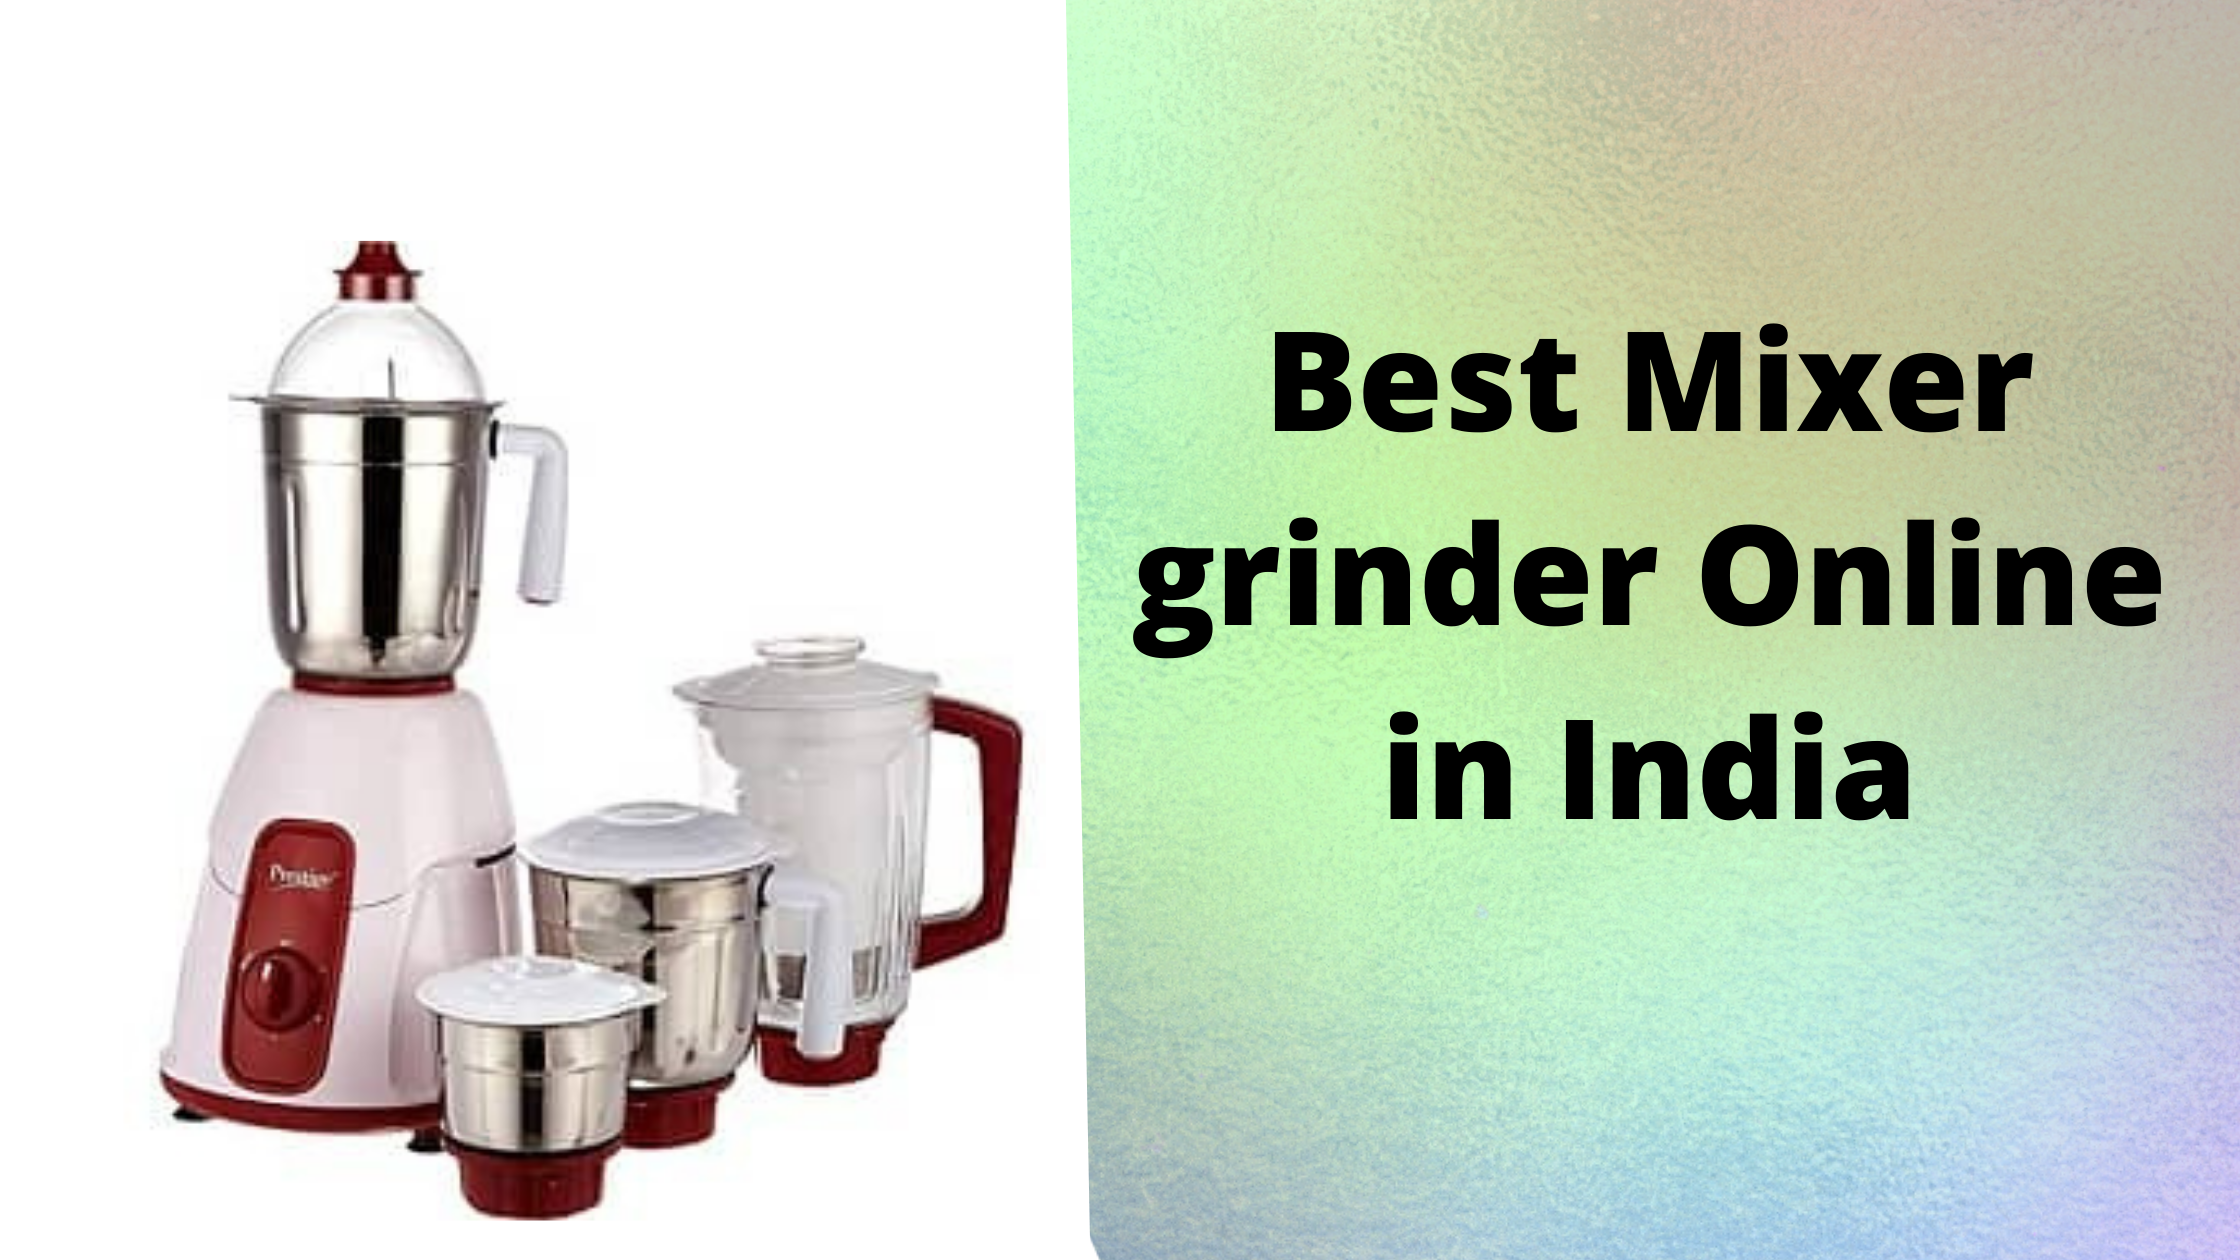 best mixer grinder online in India